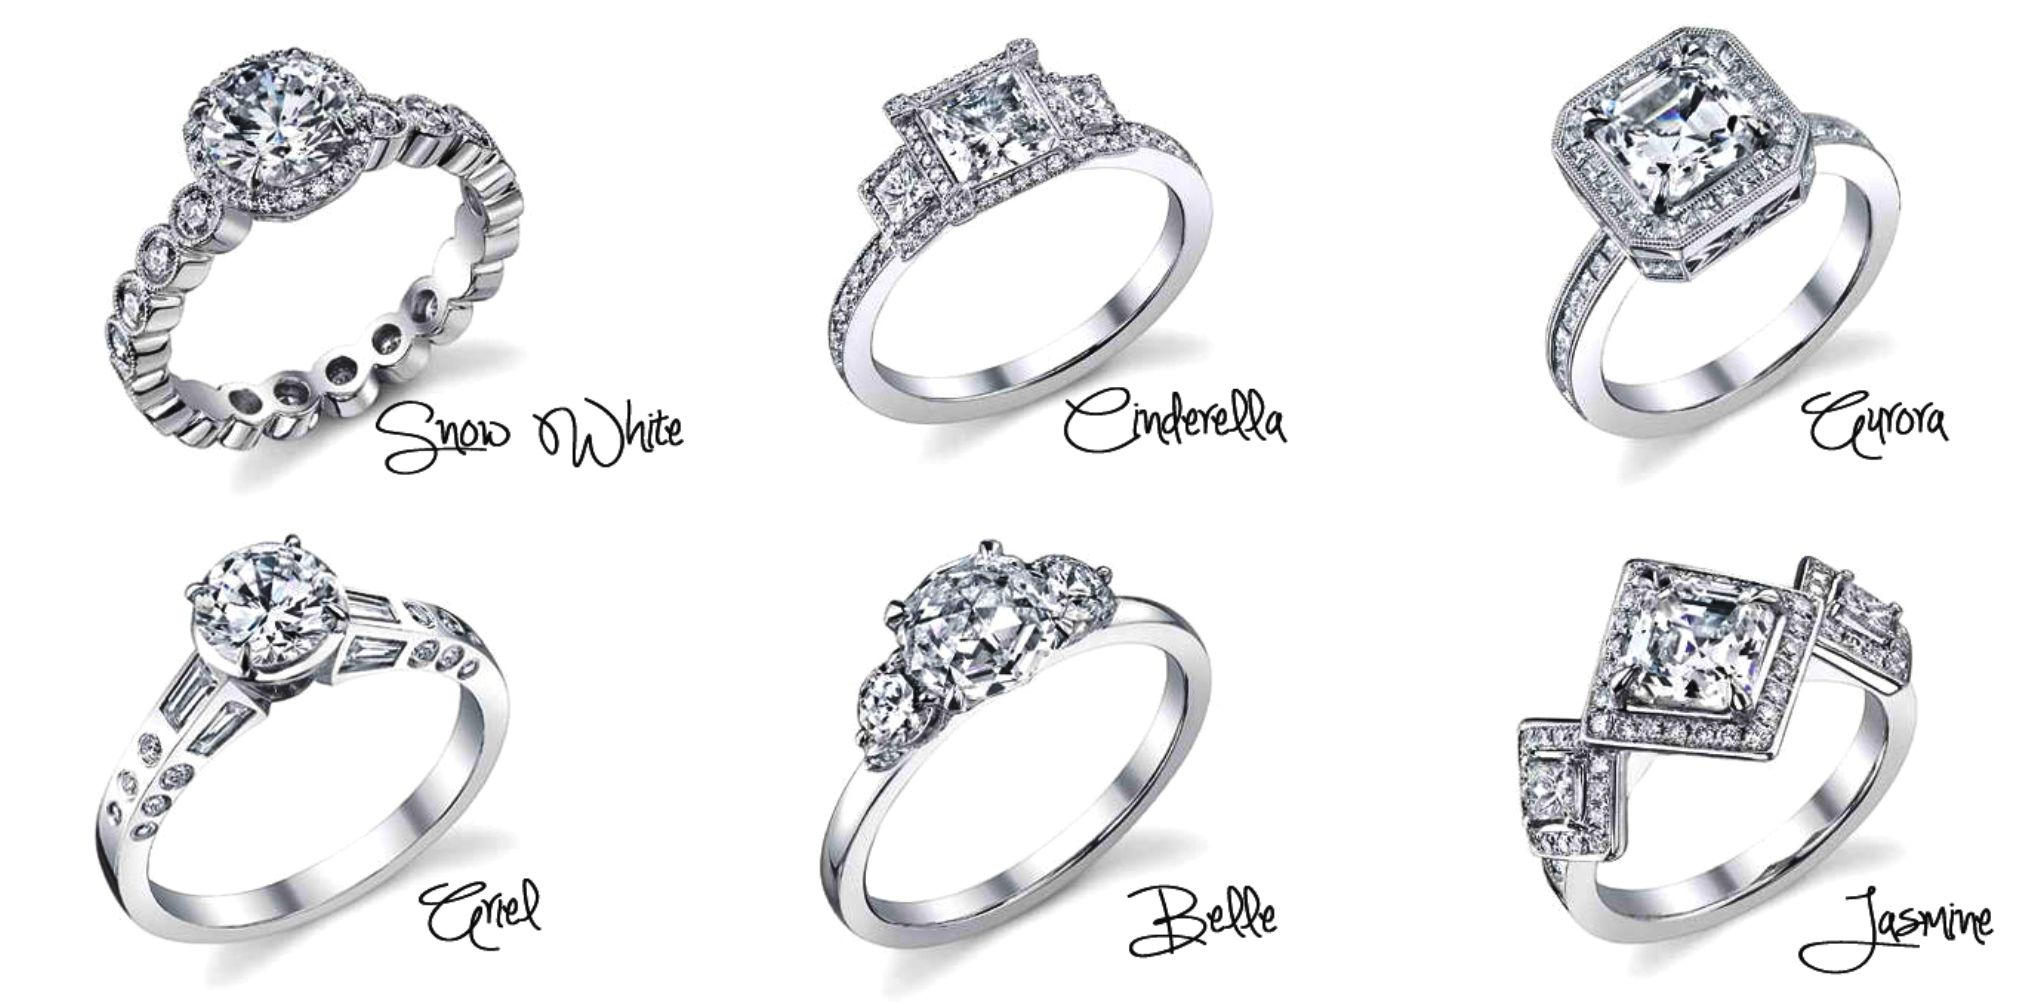 Disney princess engagement rings...I really only like